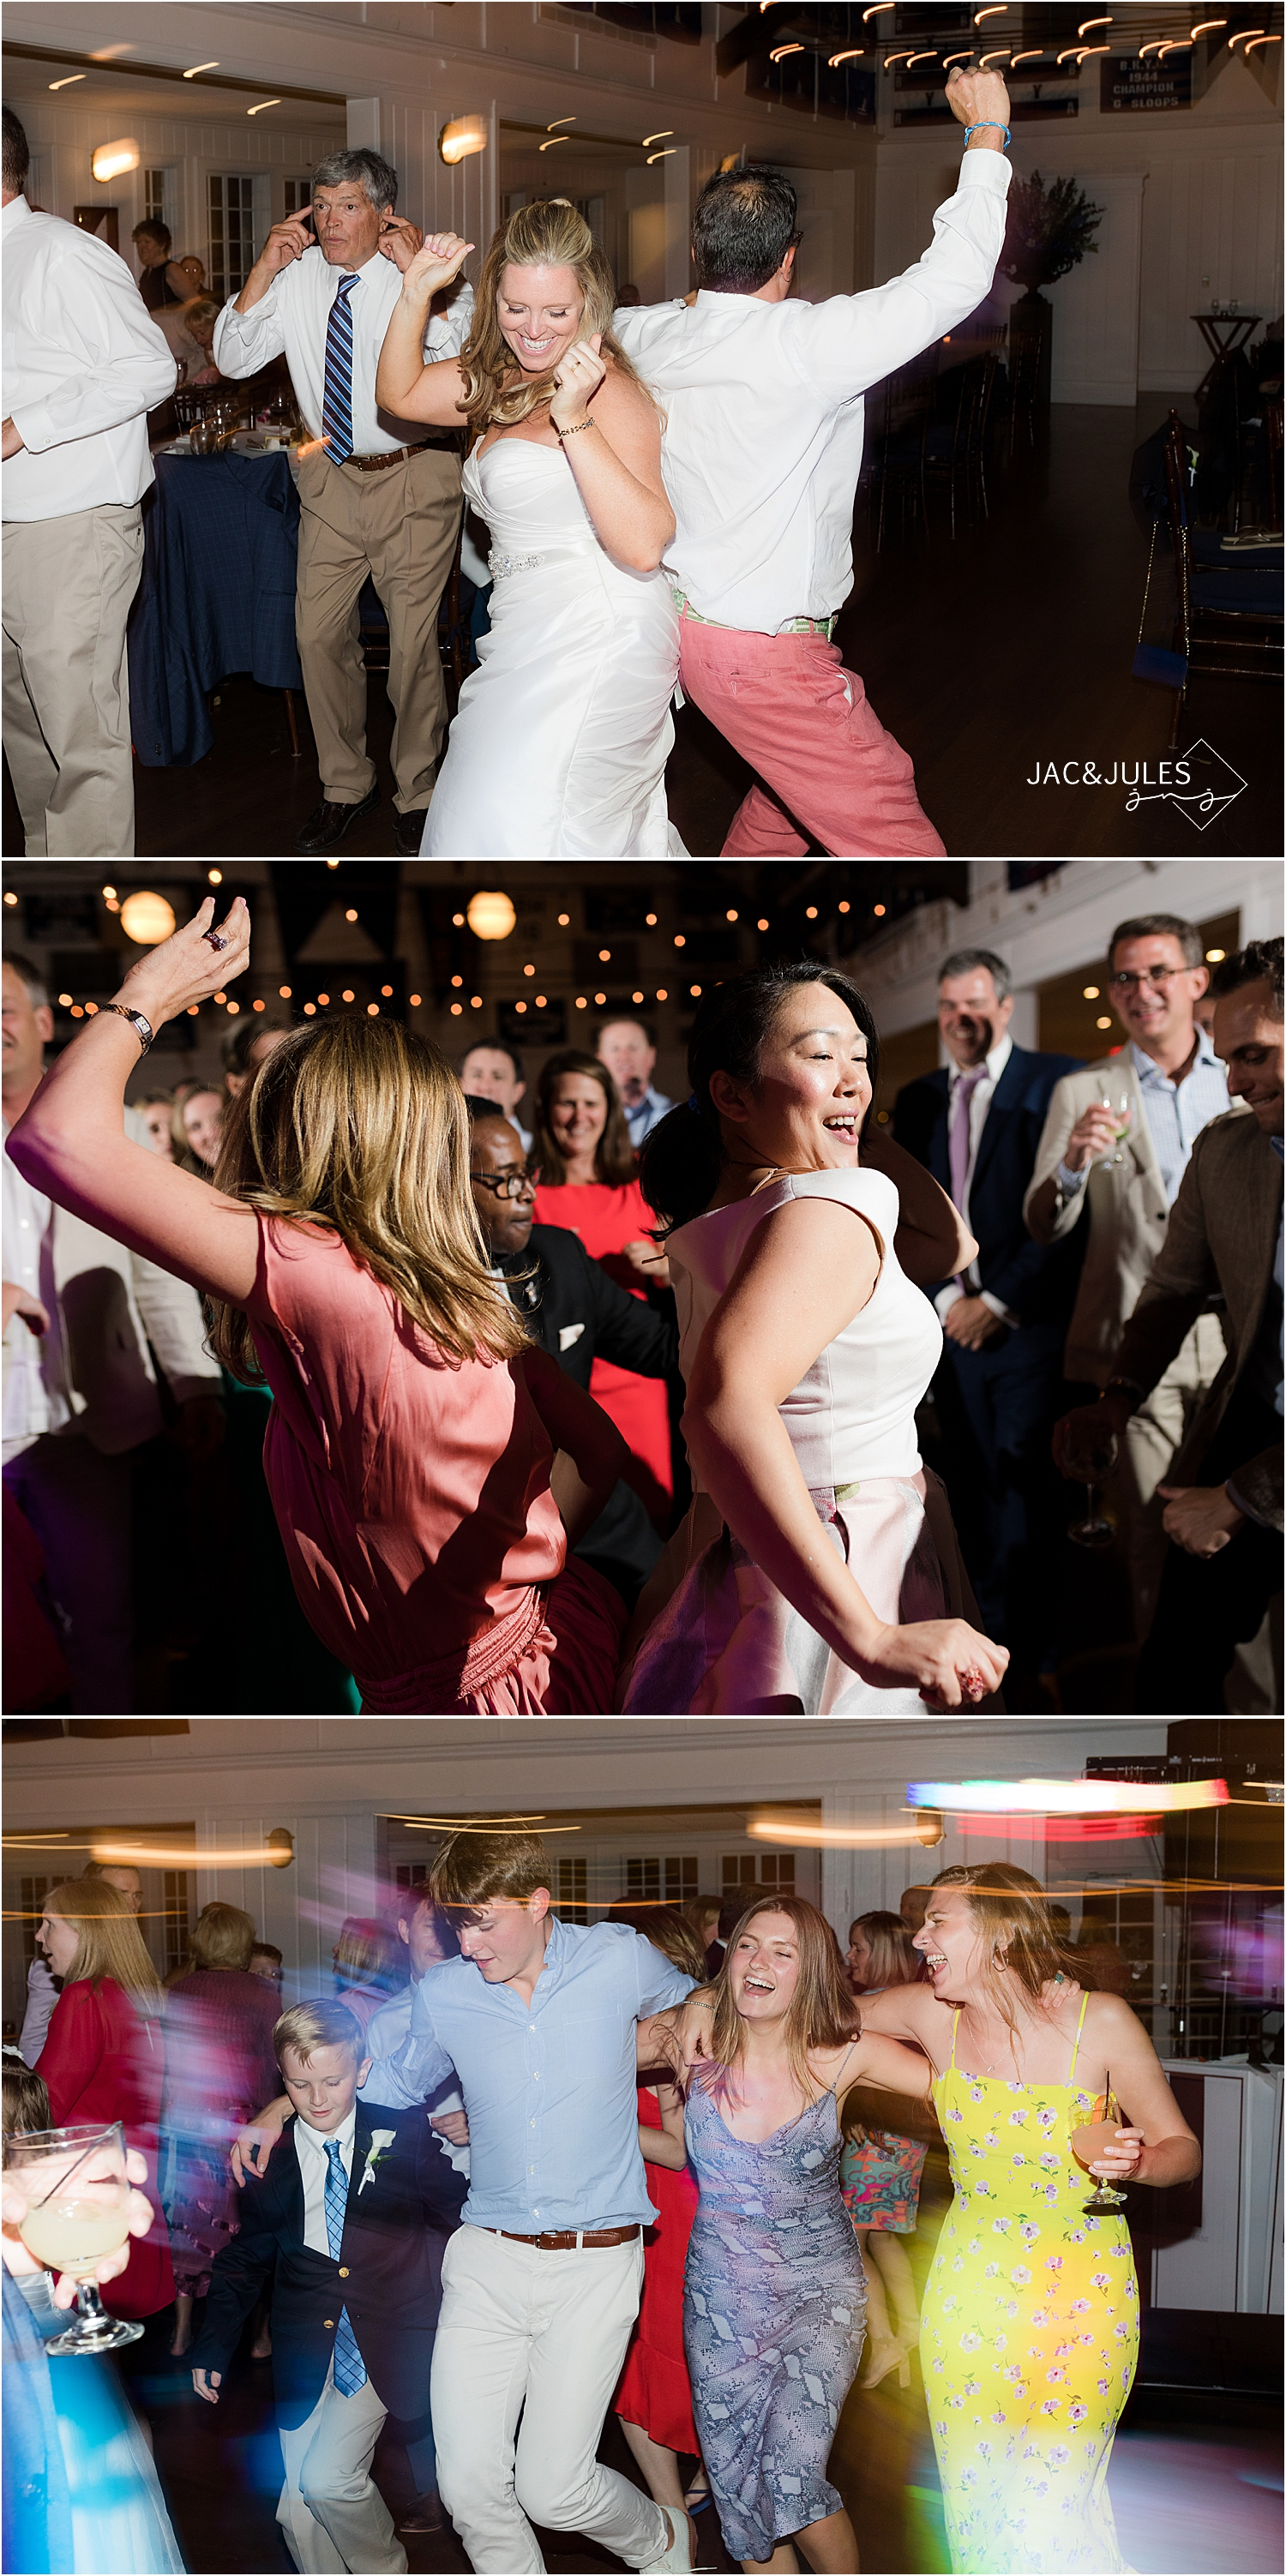 fun wedding reception dancing photos at bay head yacht club wedding